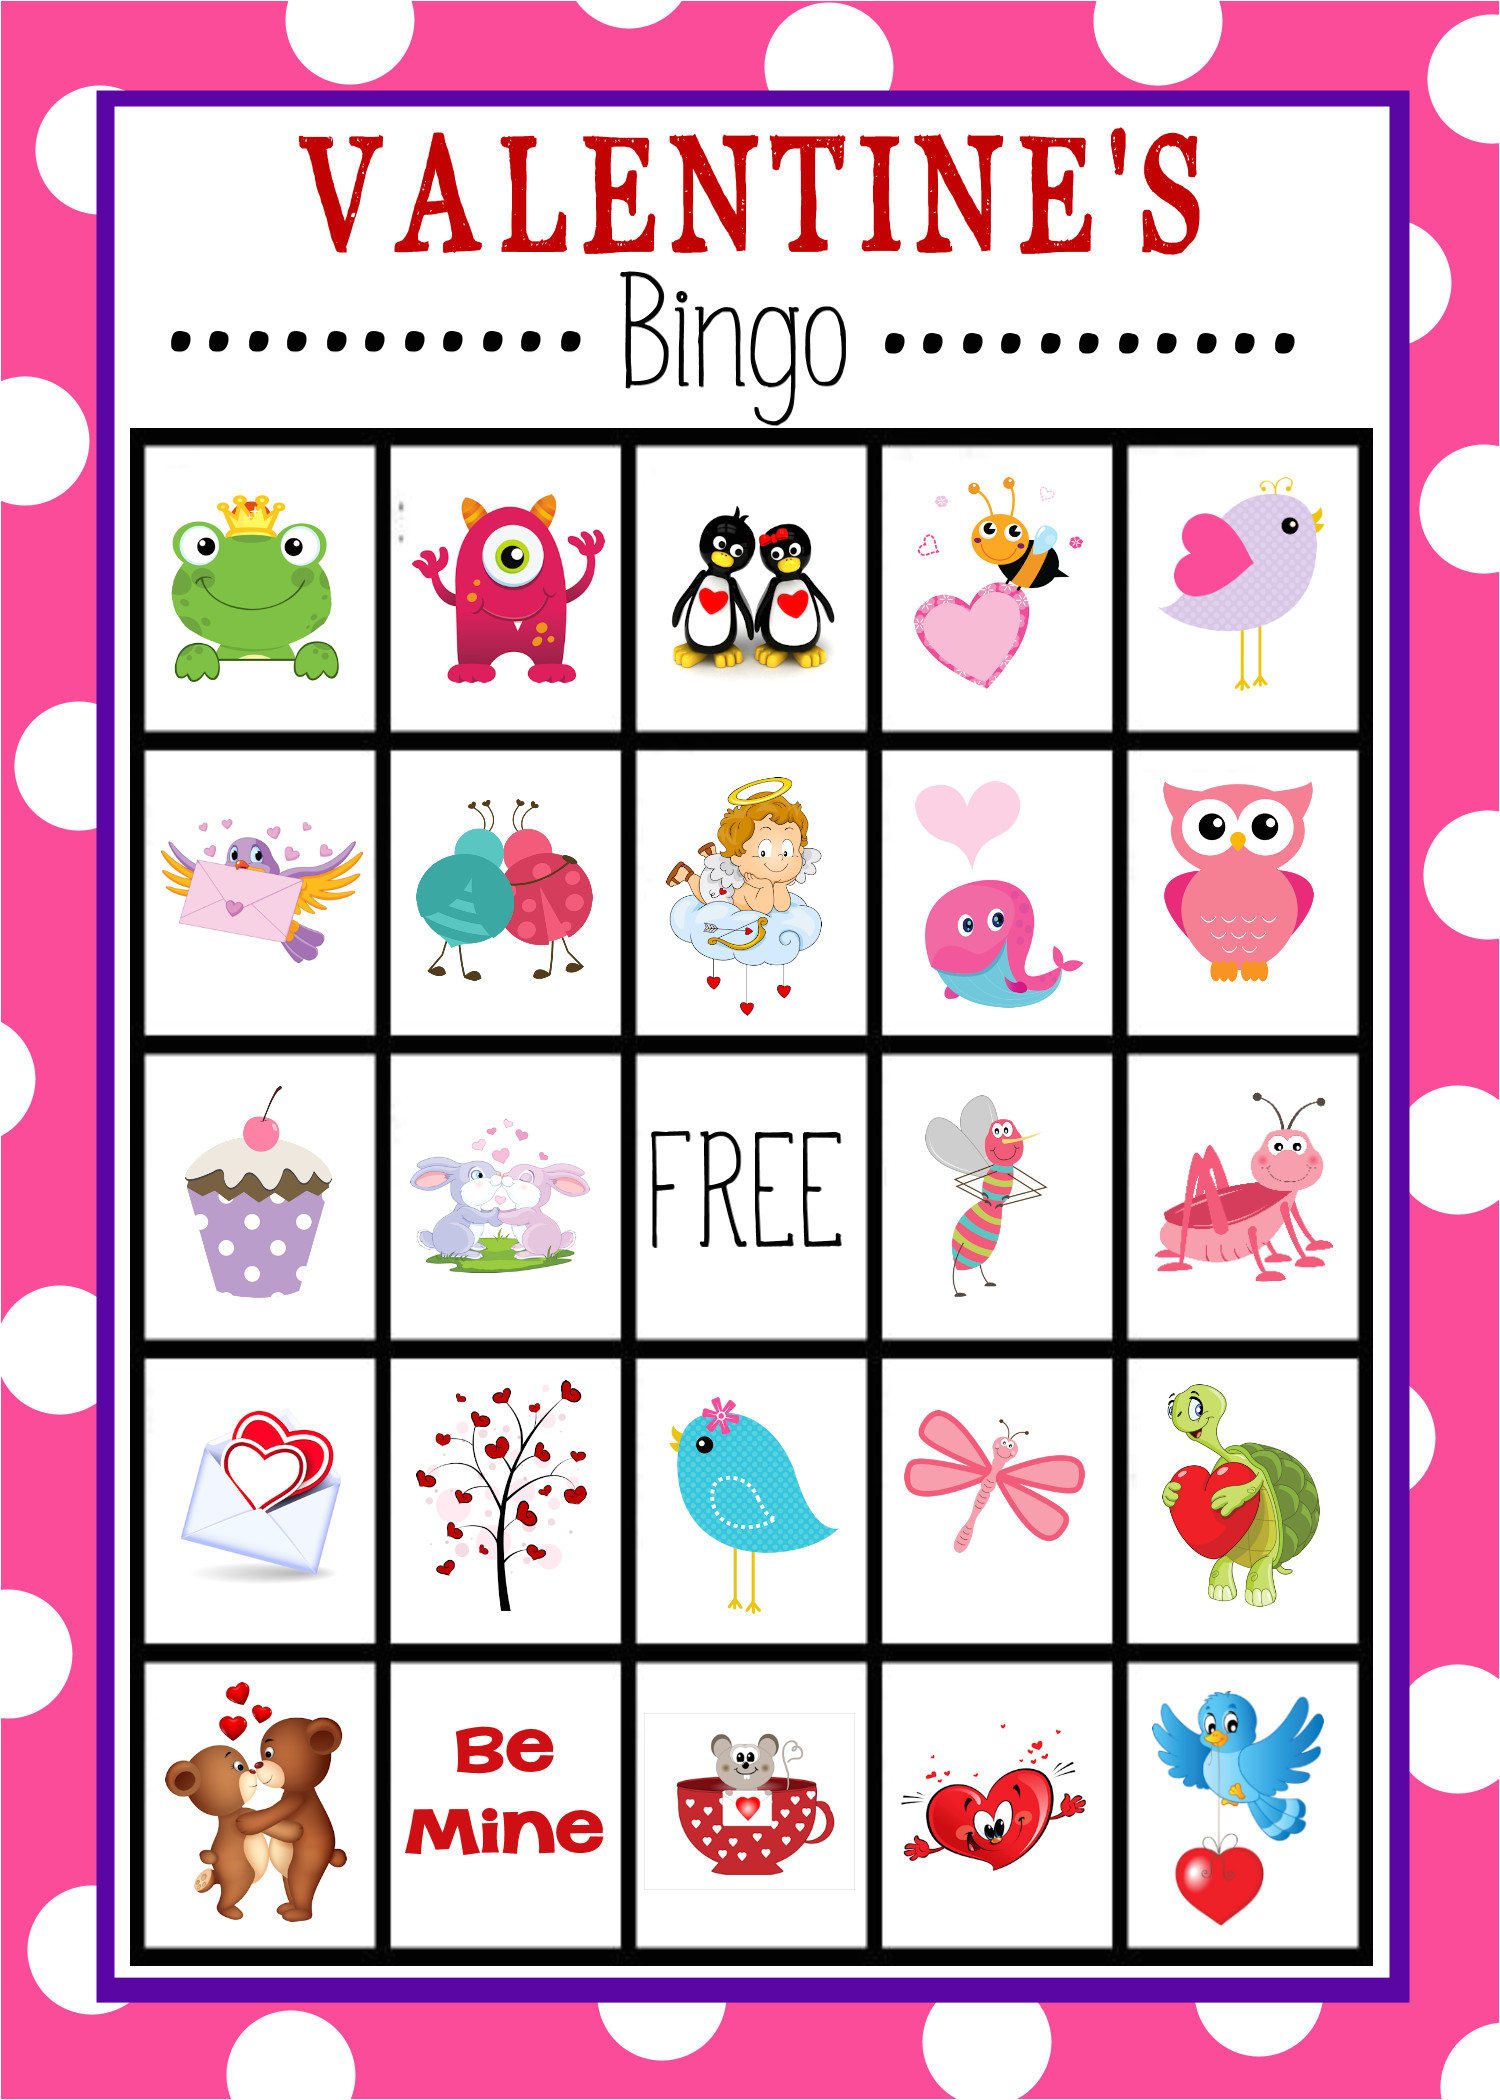 free printable valentines day bingo game